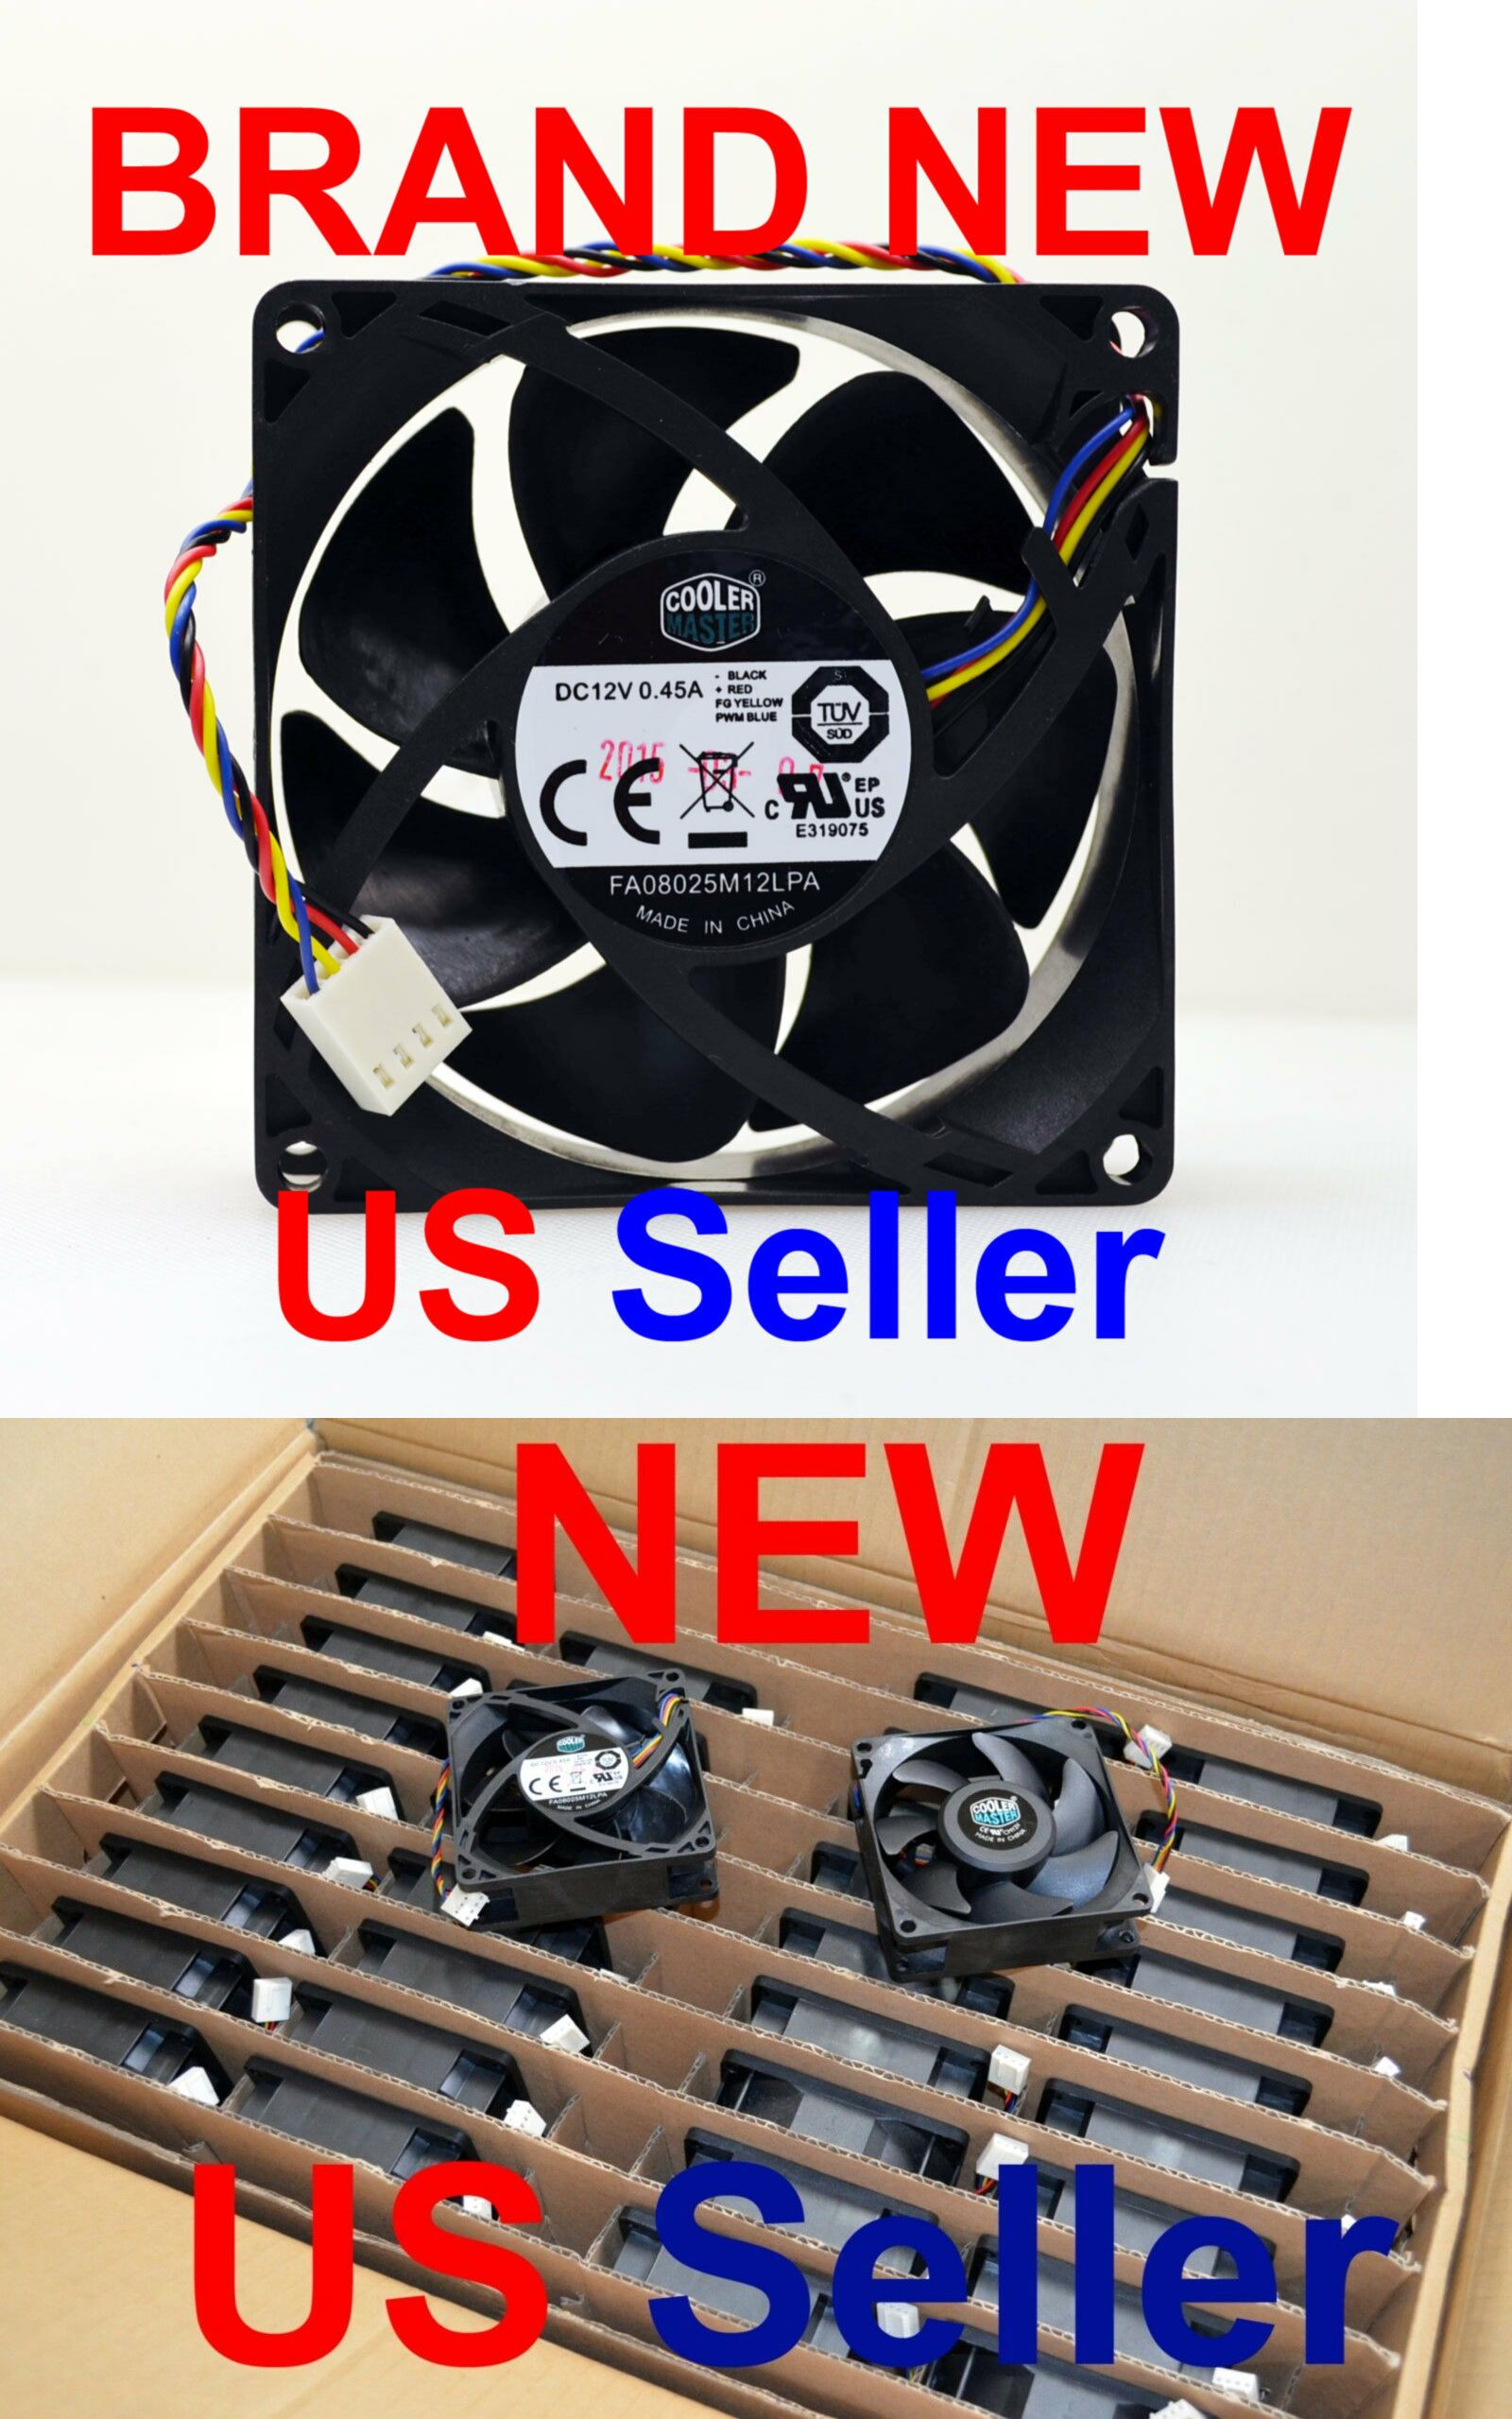 CPU Fans and Heat Sinks 131486: Cooler Master Fa08025m12lpa Dc12v